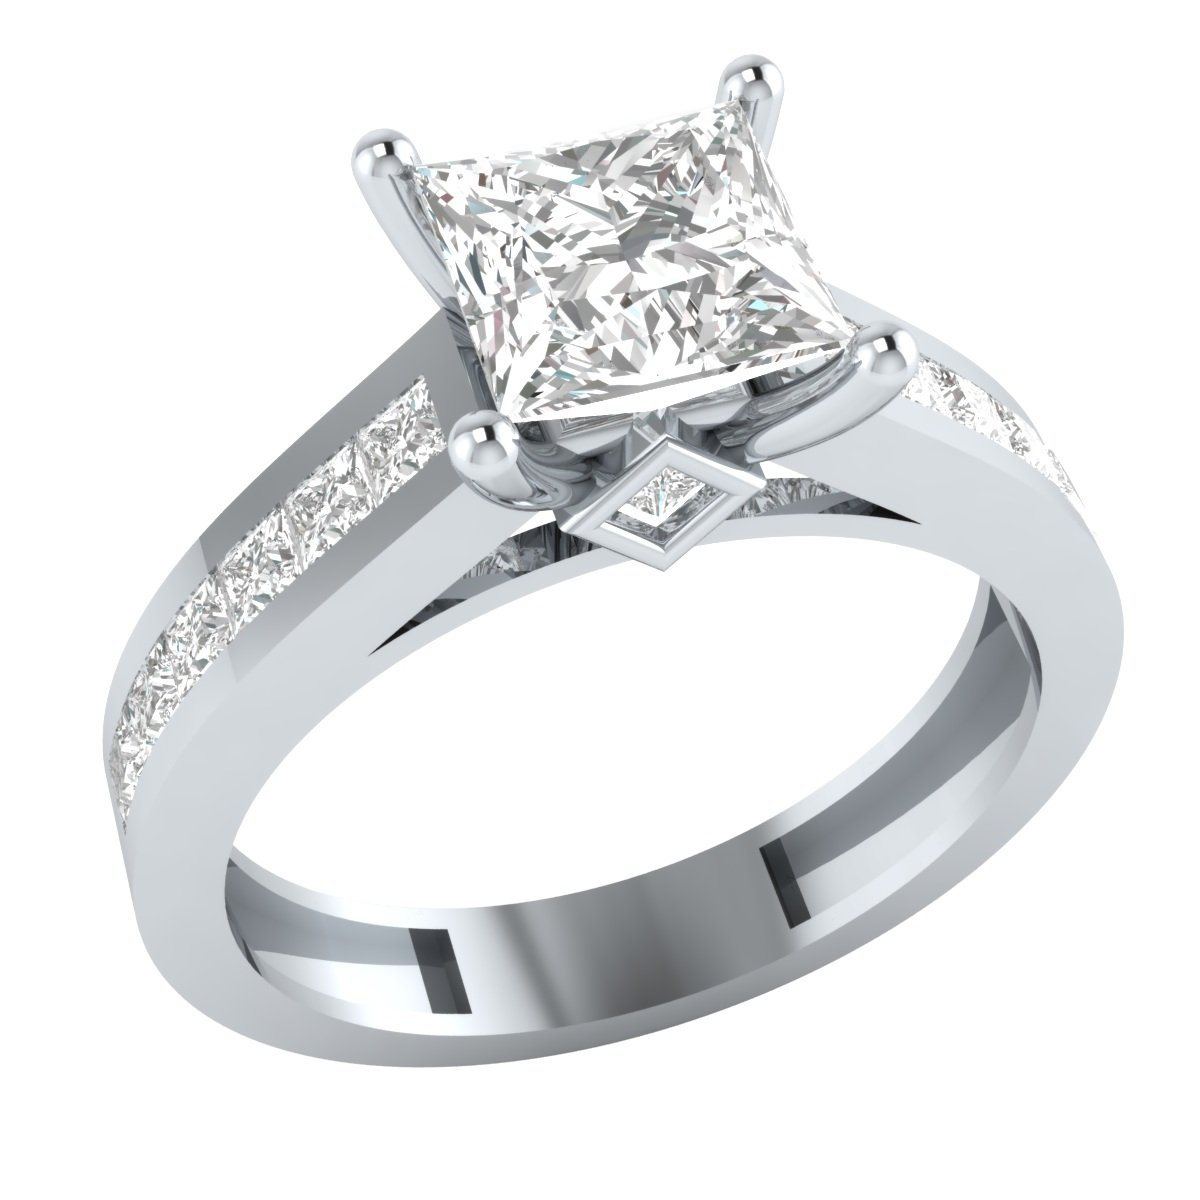 Solid 10k White Gold Princess Cut Cubic Zirconia Solitaire Wedding Engagement Ring